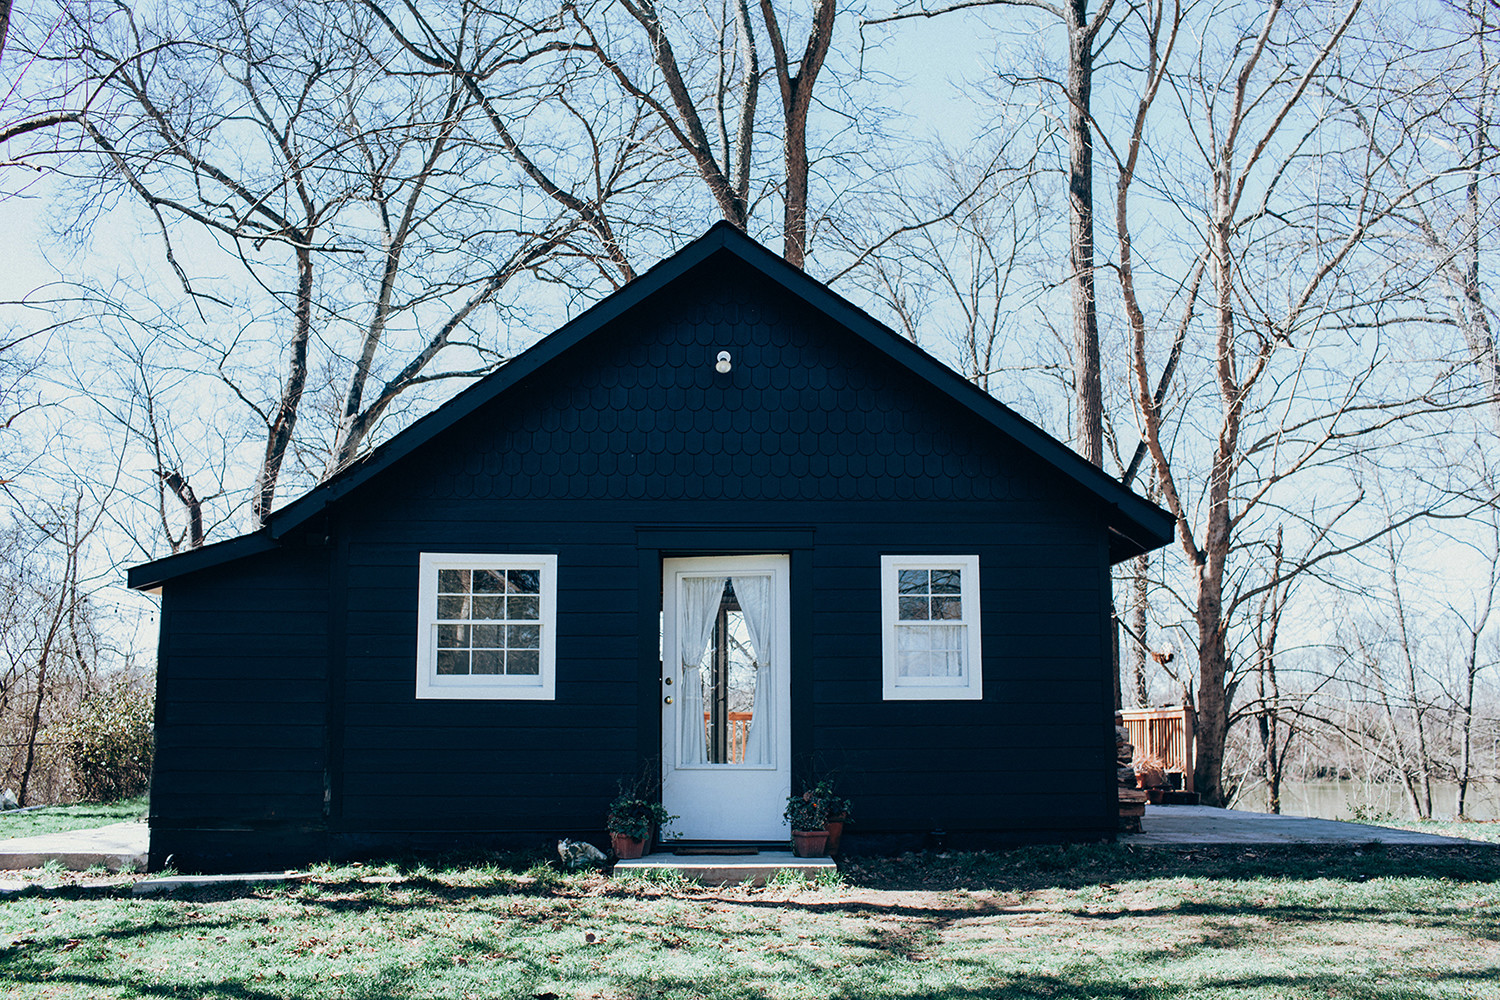 The exterior of the cottage is painted a deep, inky black color. Its crisp-white door and windows provide accent against the moody-toned paint job. All photos byEmily Dorio.